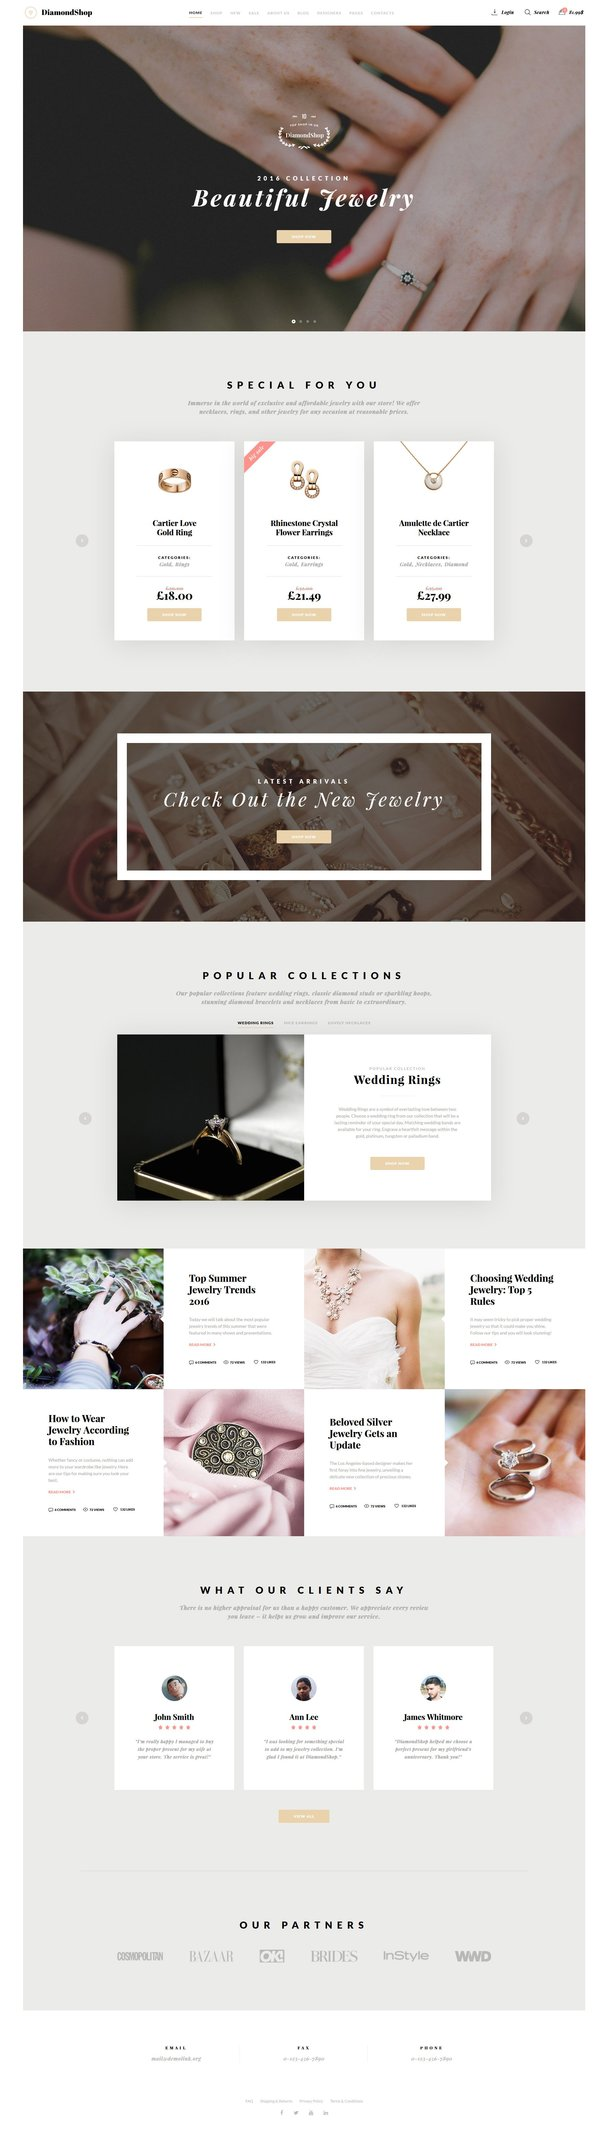 Beautiful Jewelry Responsive Bootstrap Website Template